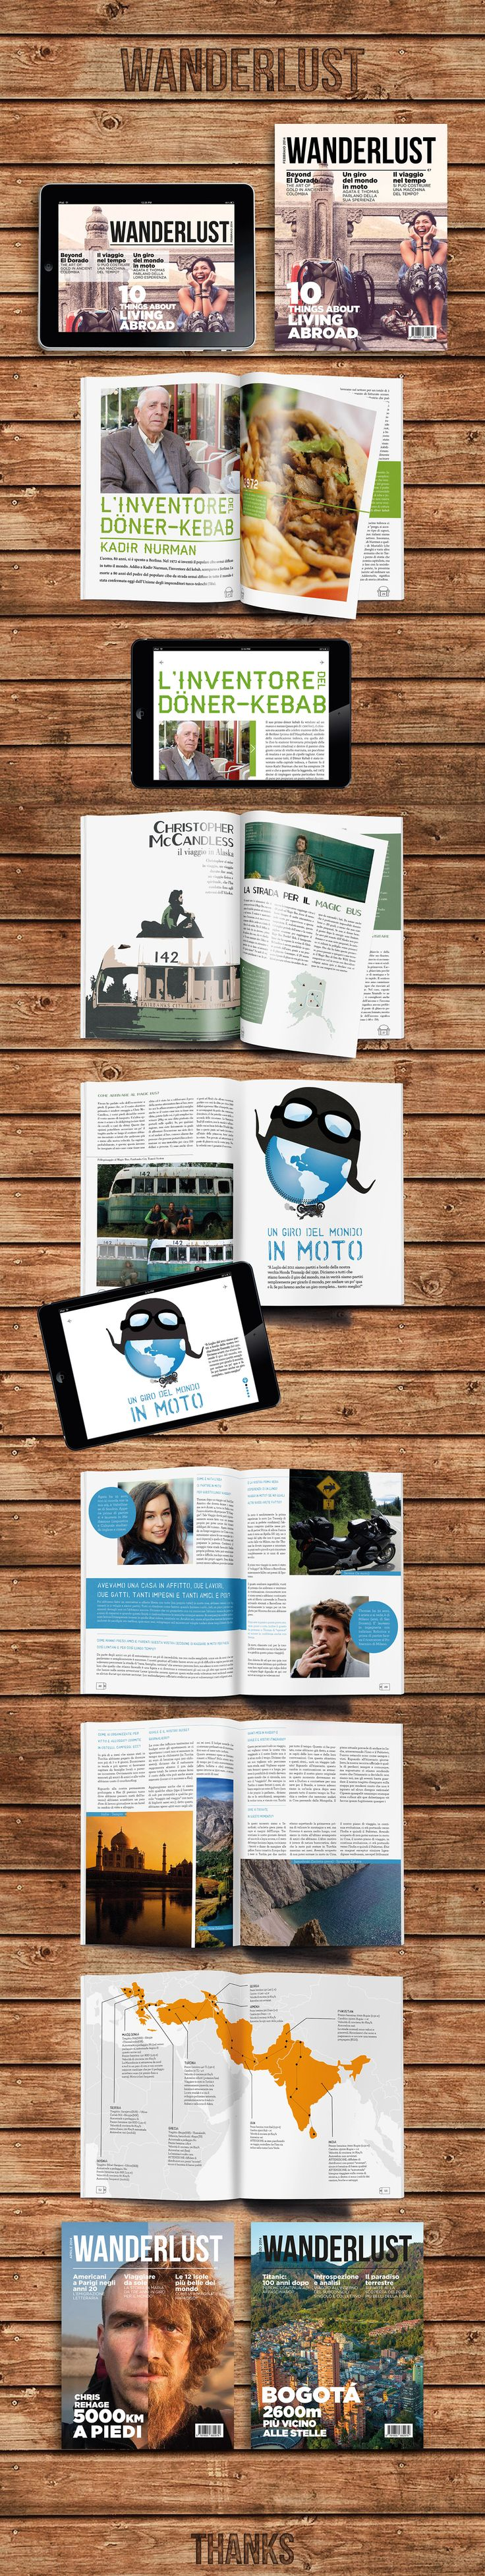 WANDERLUST - print design - magazine - ipad - digital publishing - infographic - dps - inDesign - rivista di viaggi